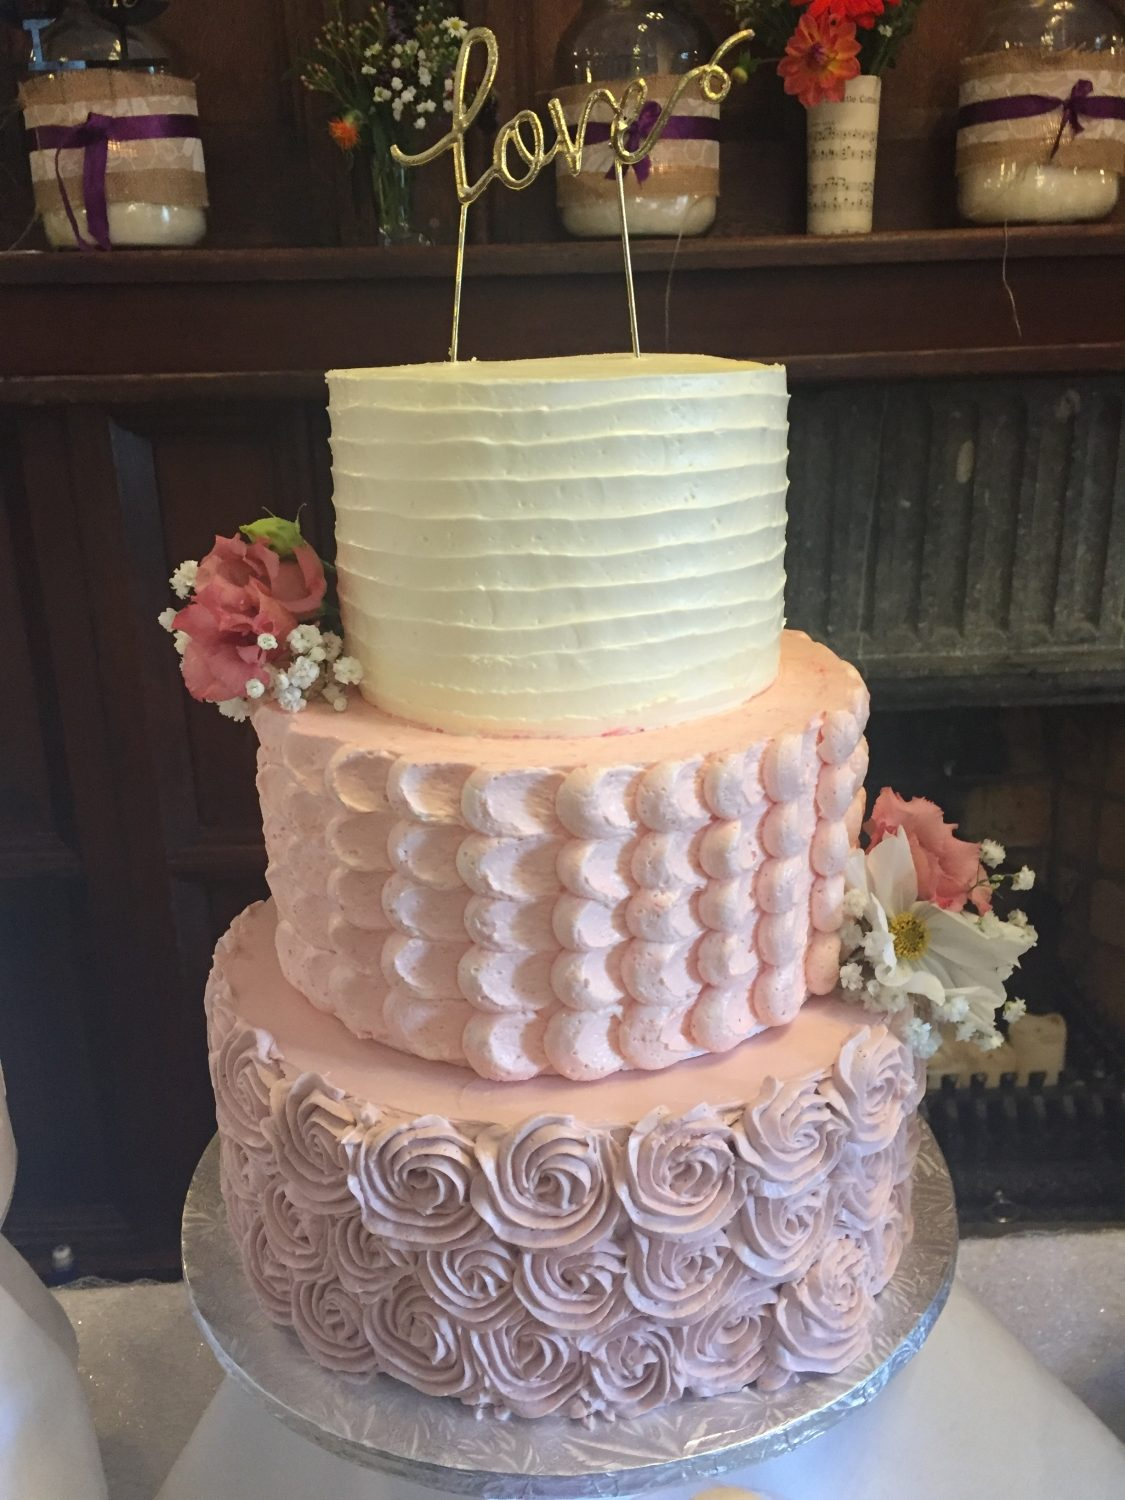 Pretty in pink buttercream